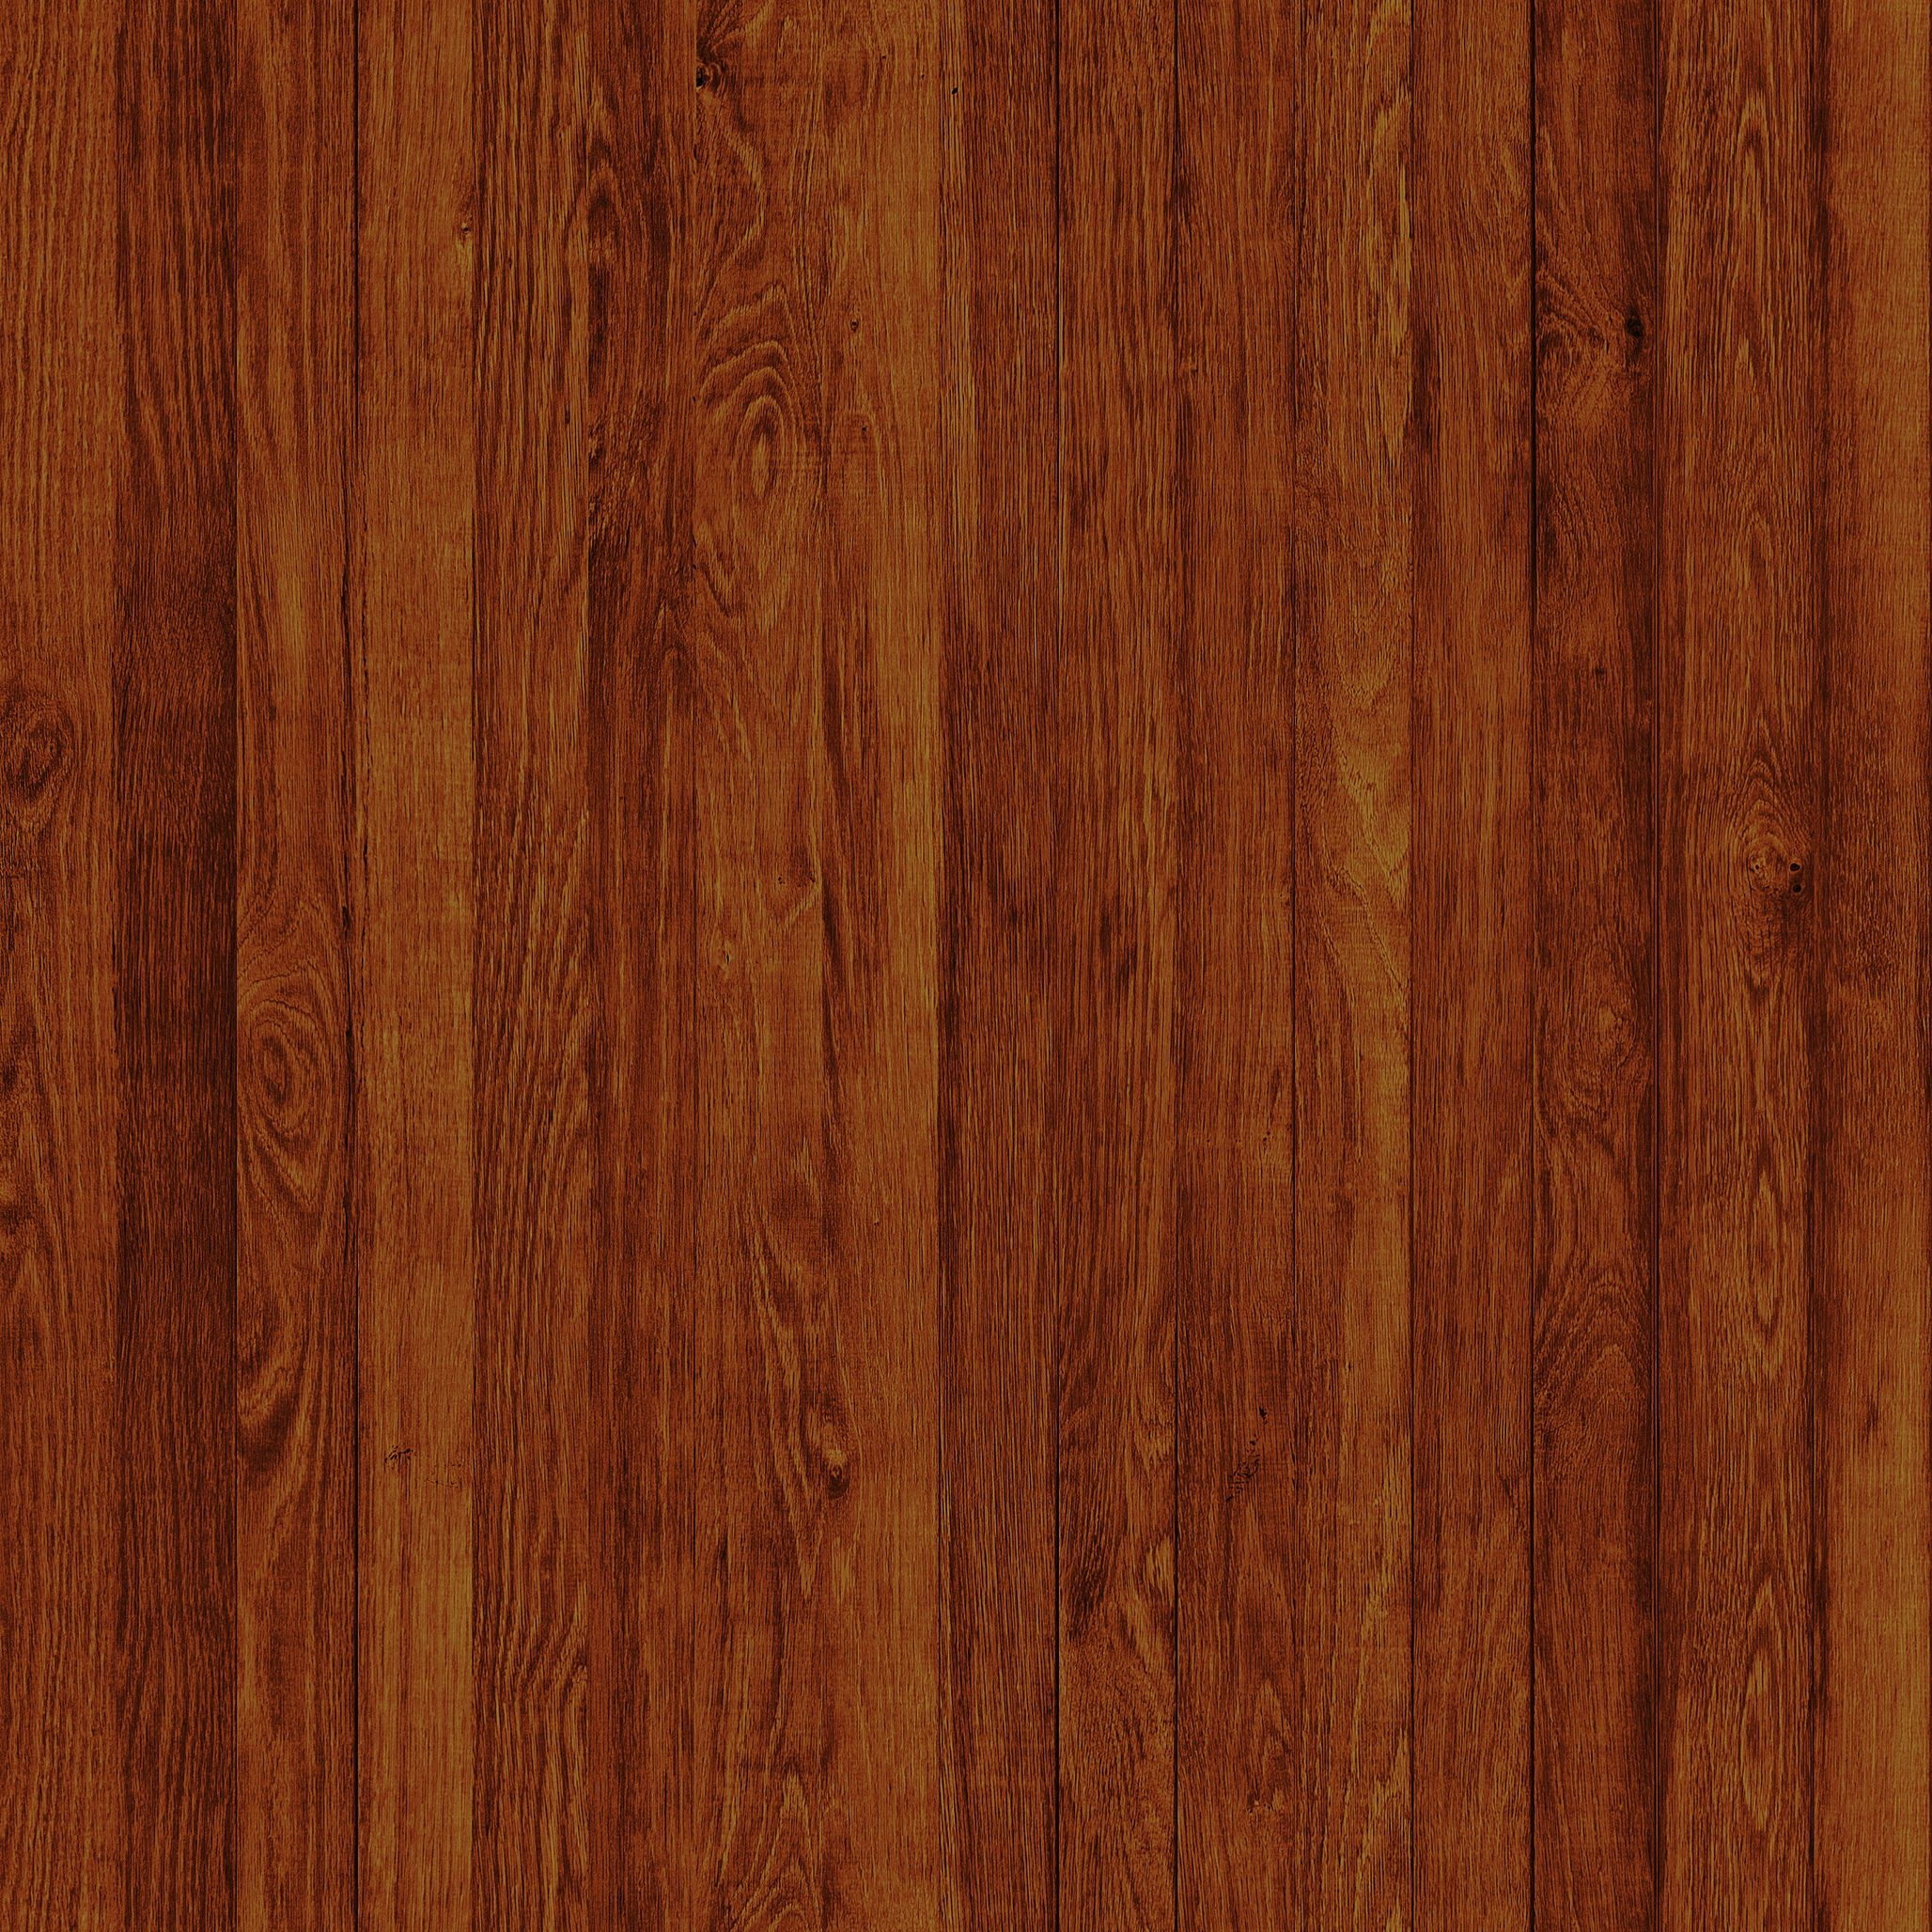 Wooden Floor Texture for Stylish Eco Friendly House Design Fresh